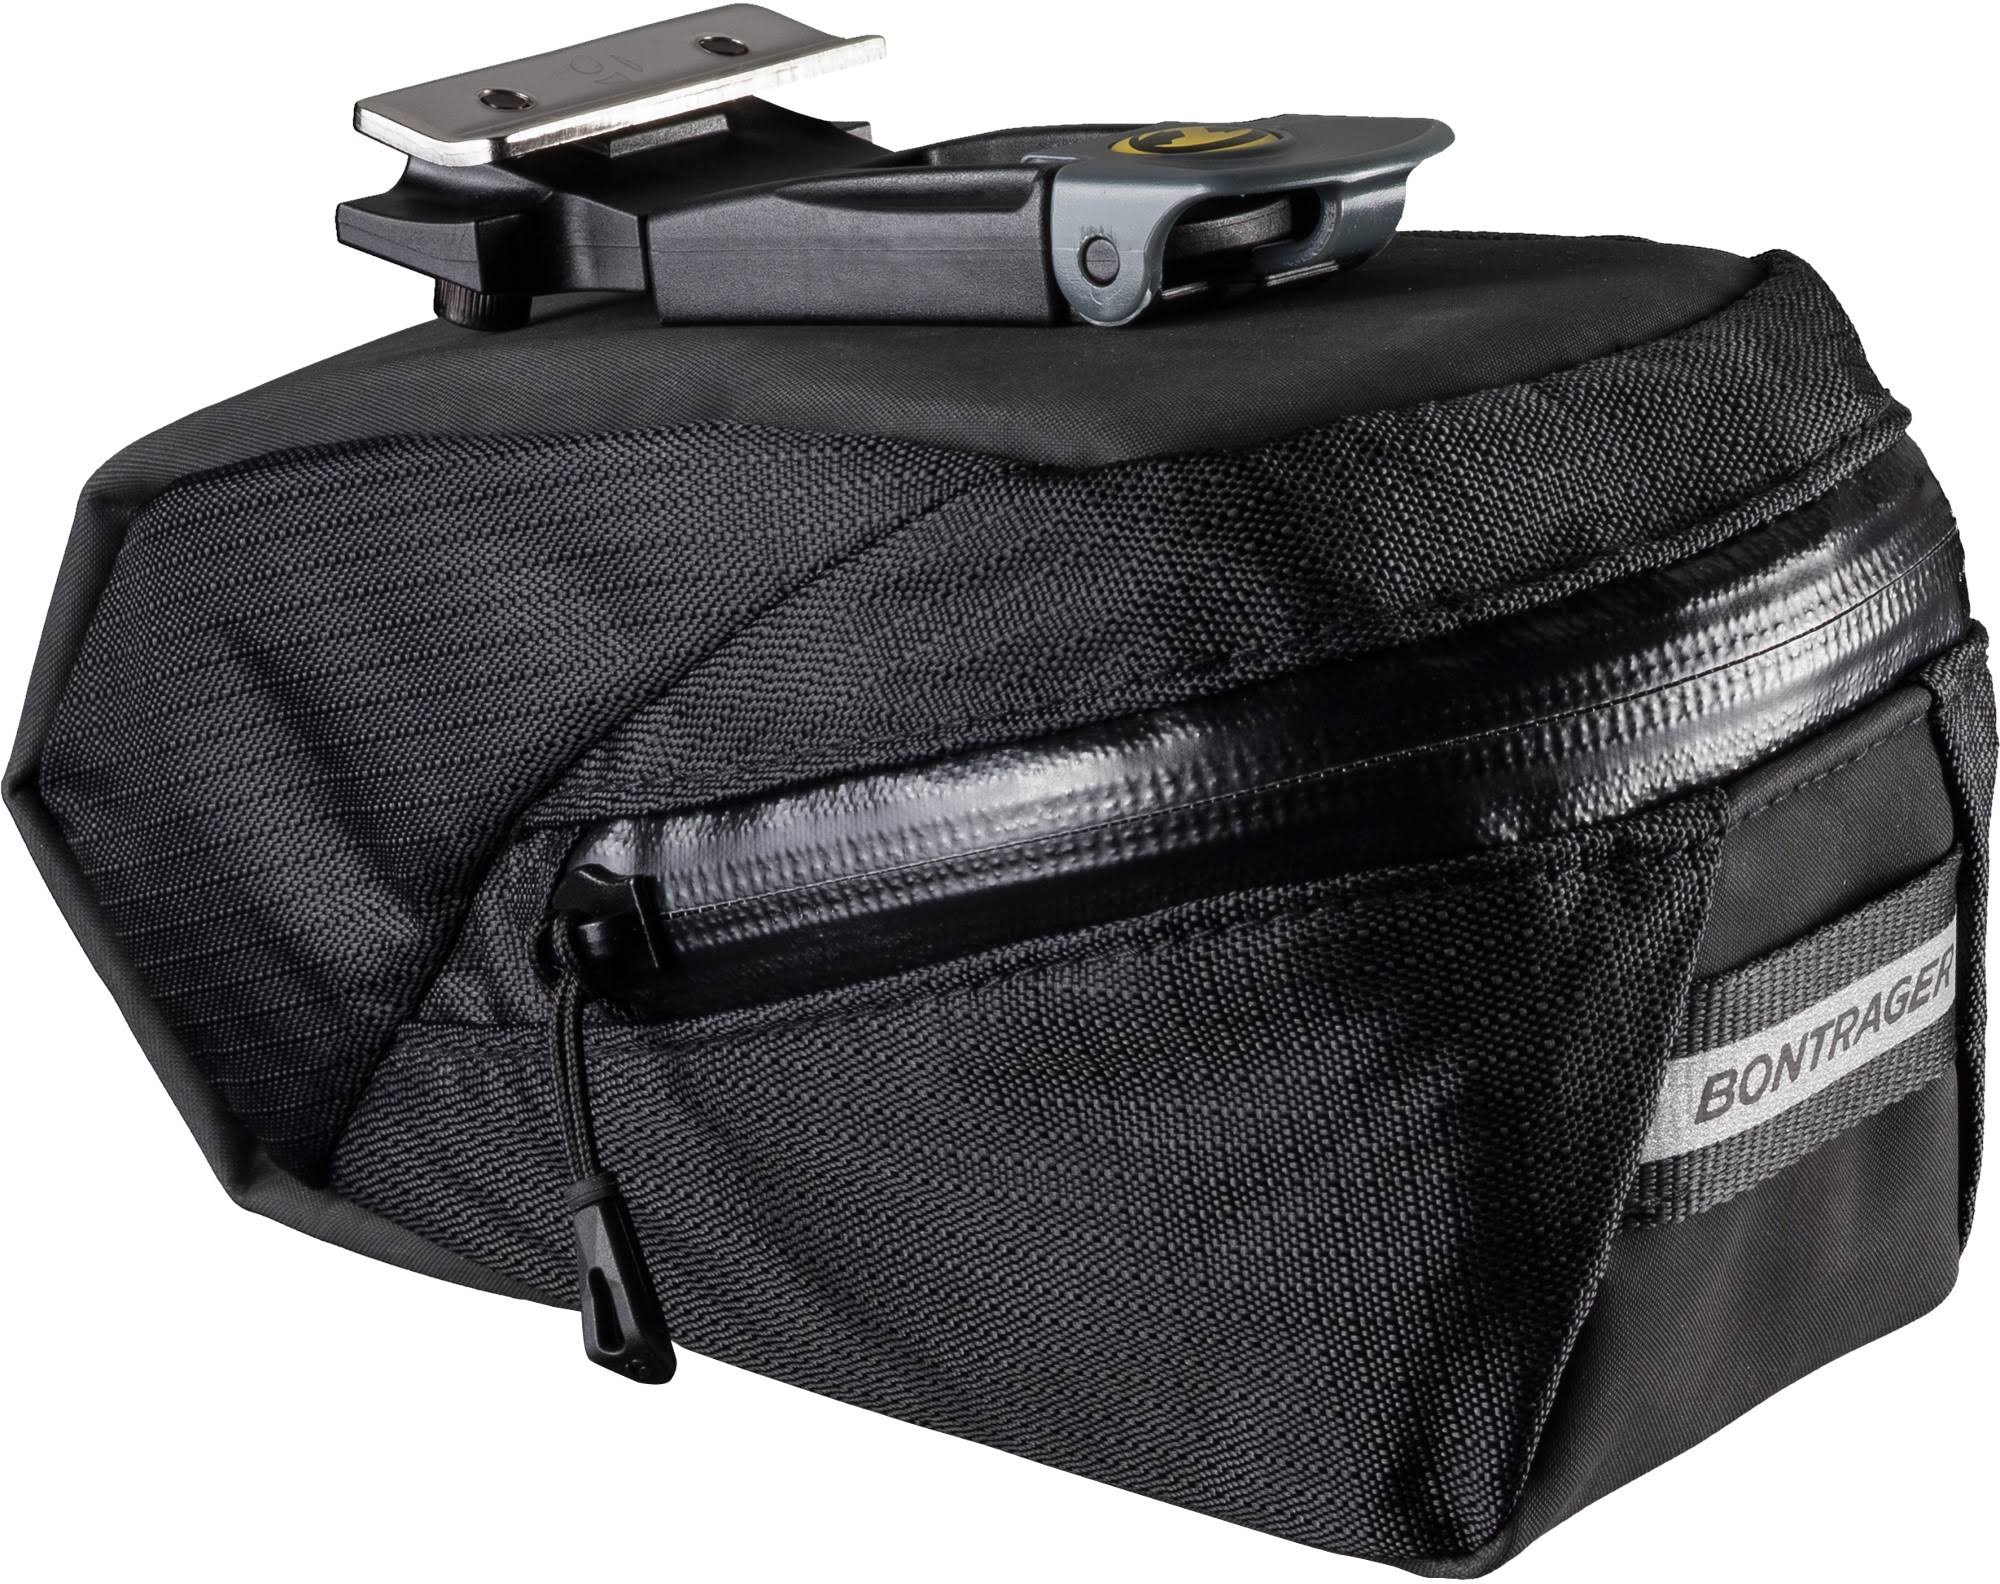 Bontrager Pro Quick Cleat Large Seat Pack - Black